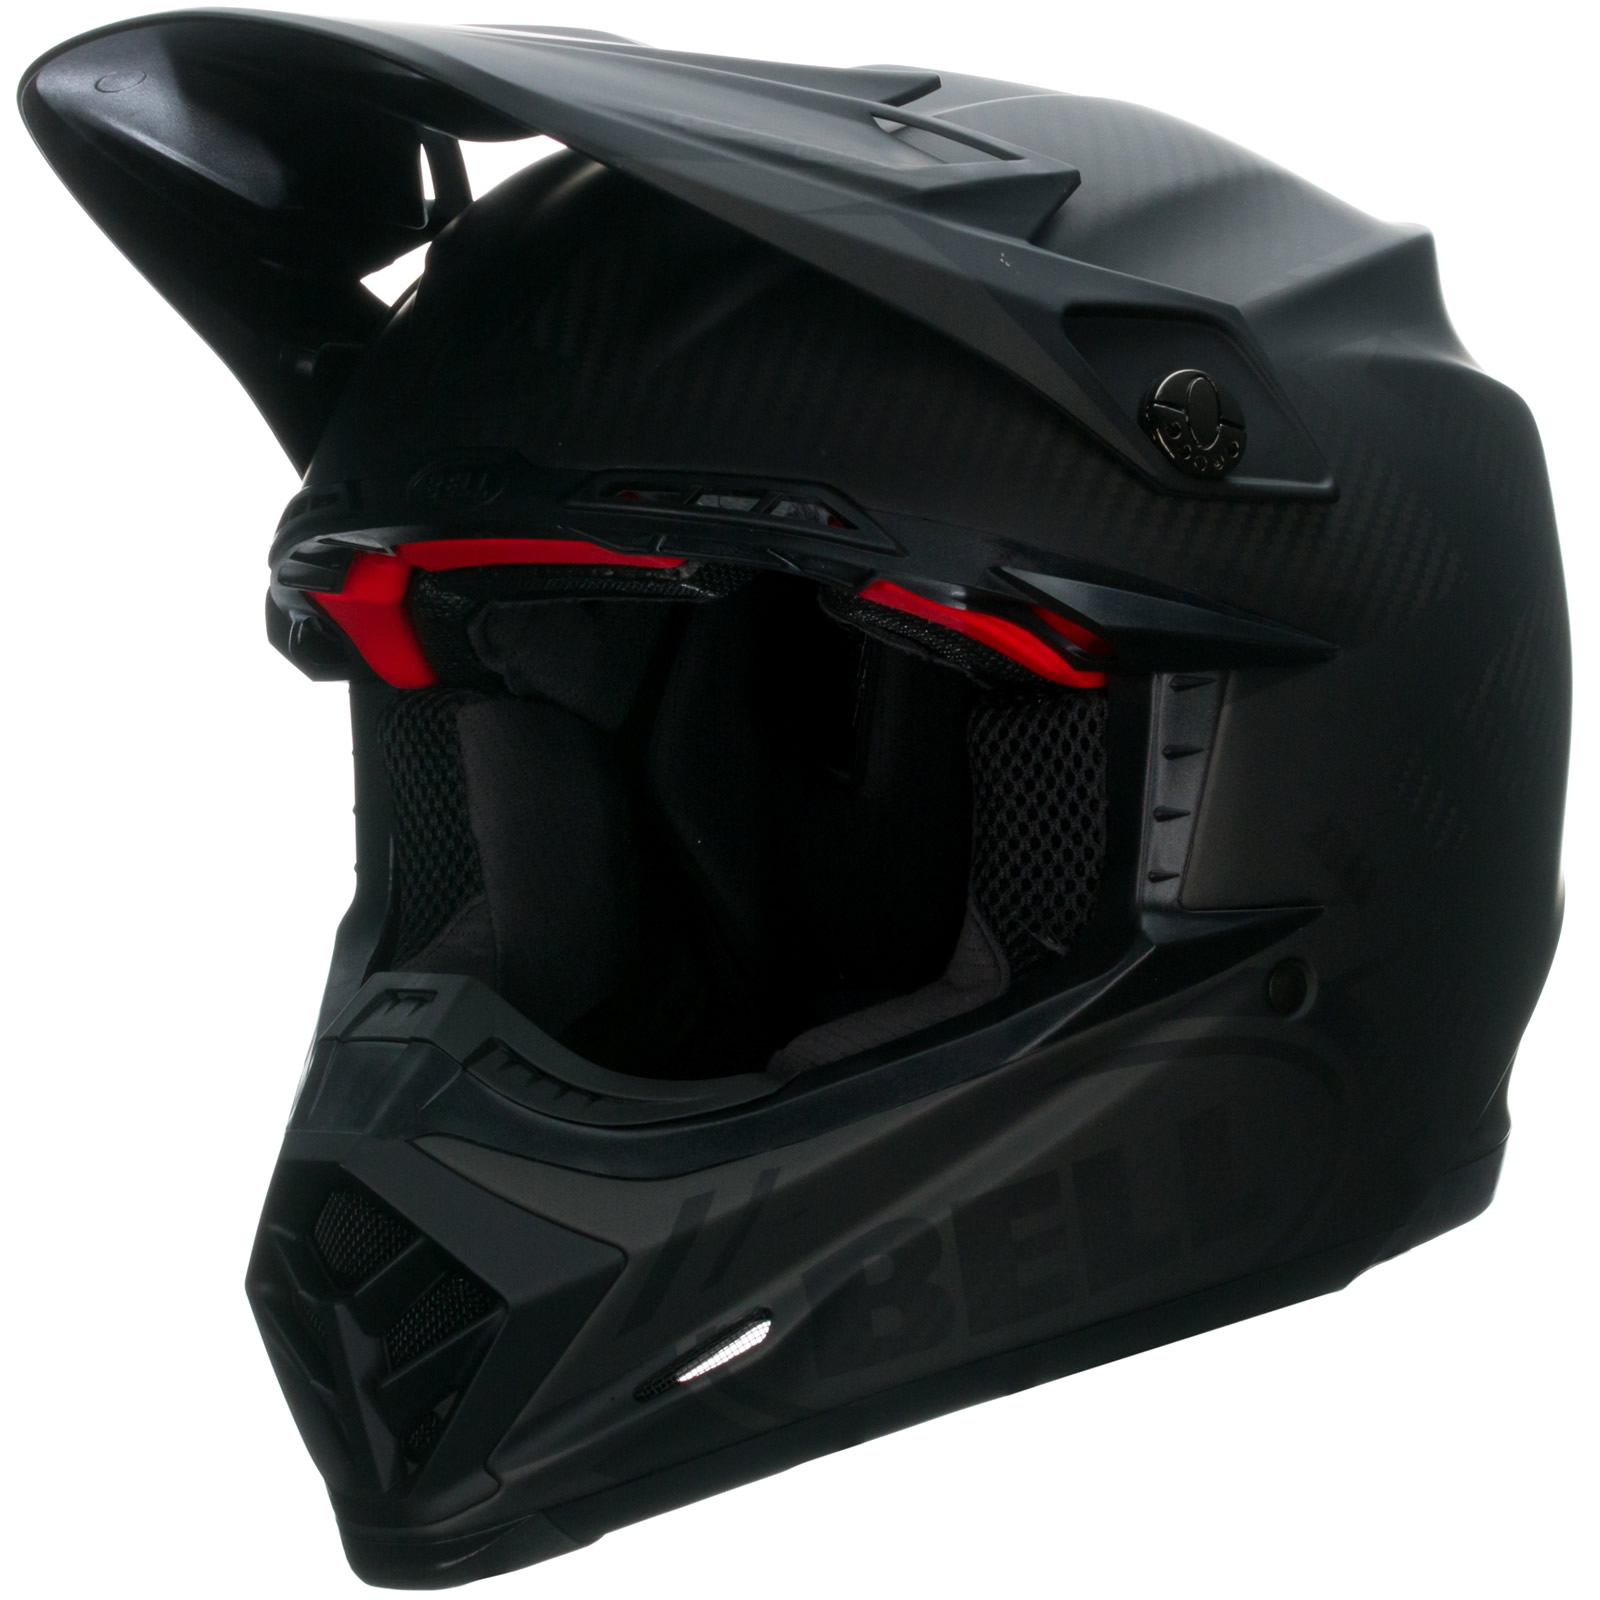 Bell Moto 9 Flex Helmet >> Bell Moto-9 Carbon Flex Syndrome Matt Black MX Cross Quad Motocross Safety Lid | eBay